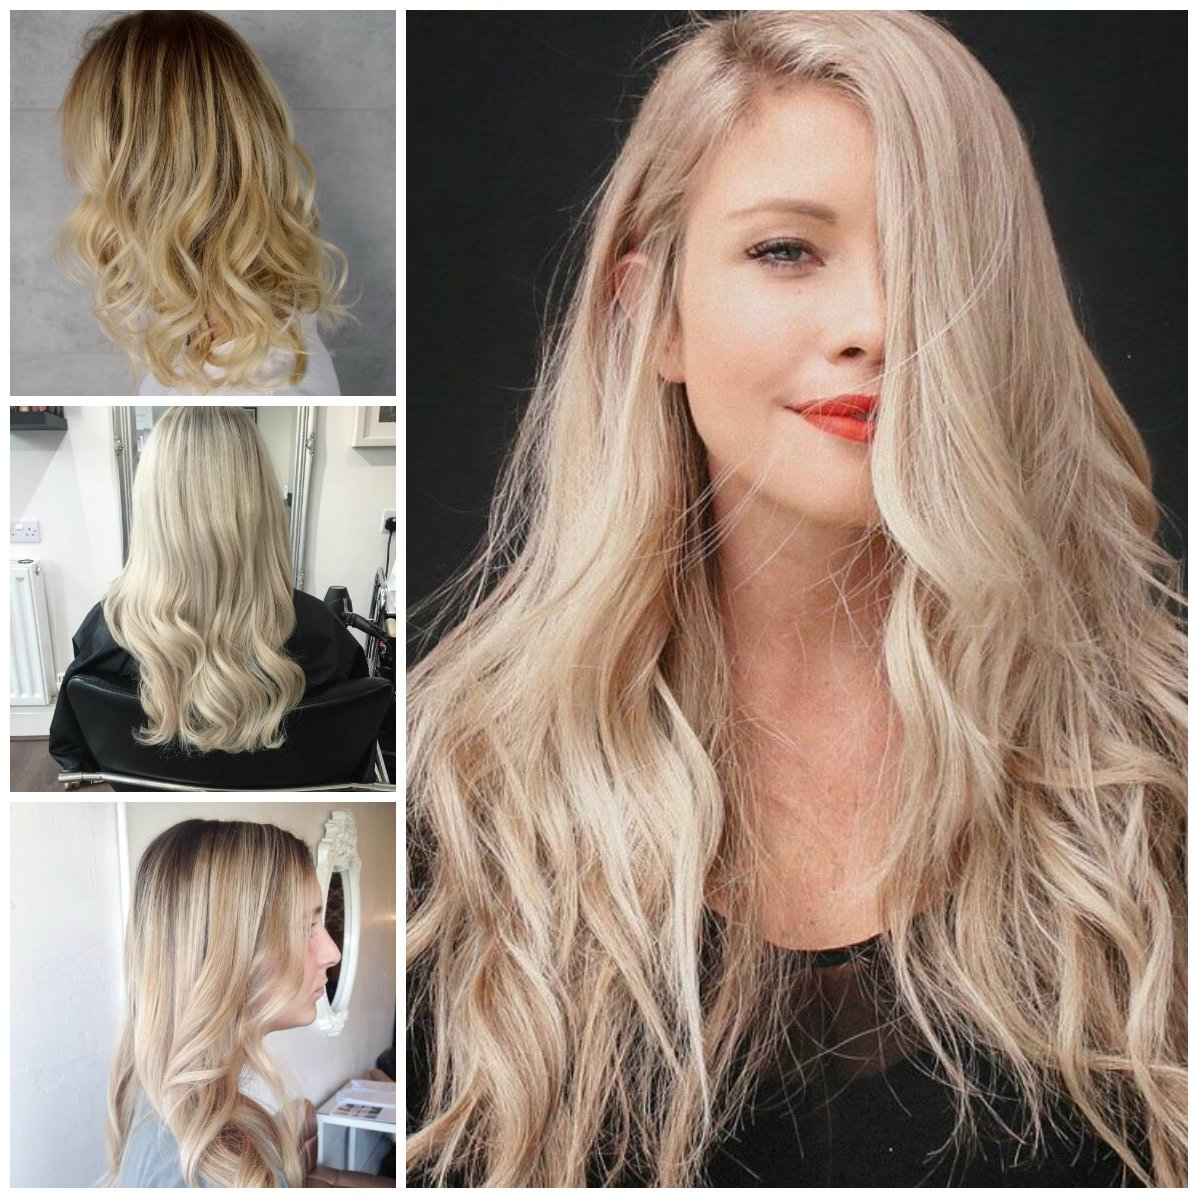 10 Amazing Different Blonde Hair Color Ideas light blonde hair color ideas for 2017 best hair color ideas 4 2020